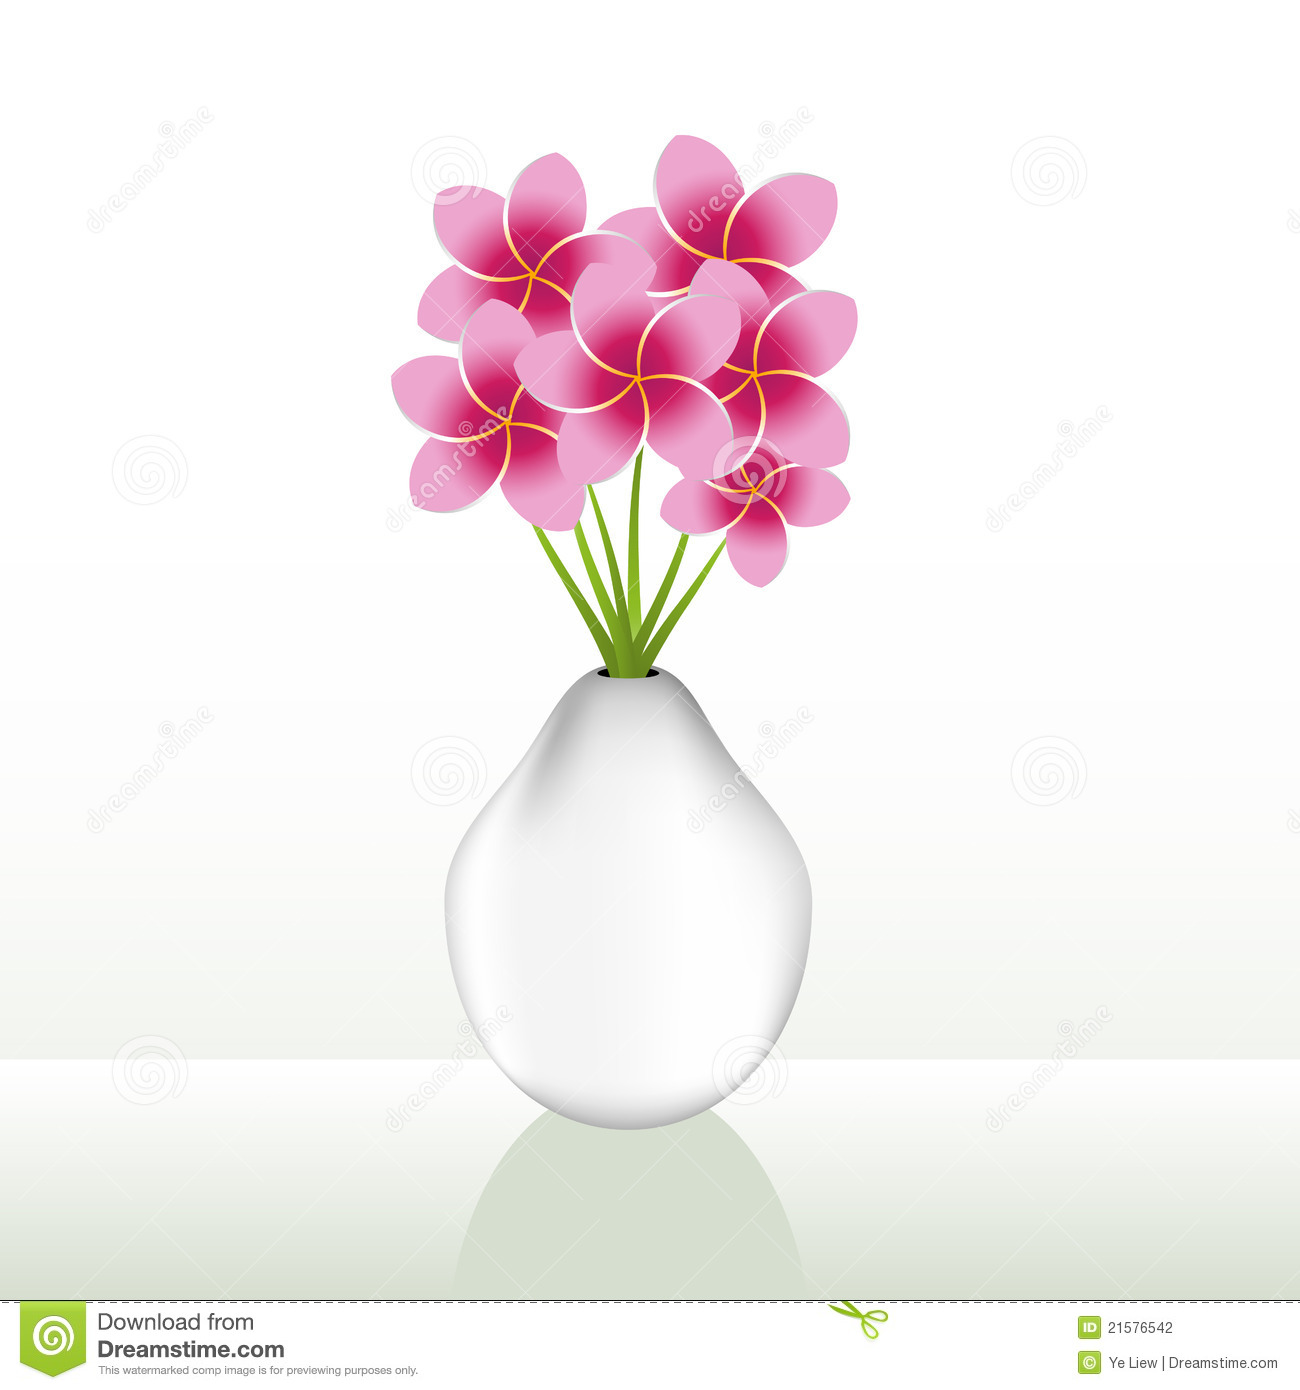 displaying 16 gt images for flower in a vase